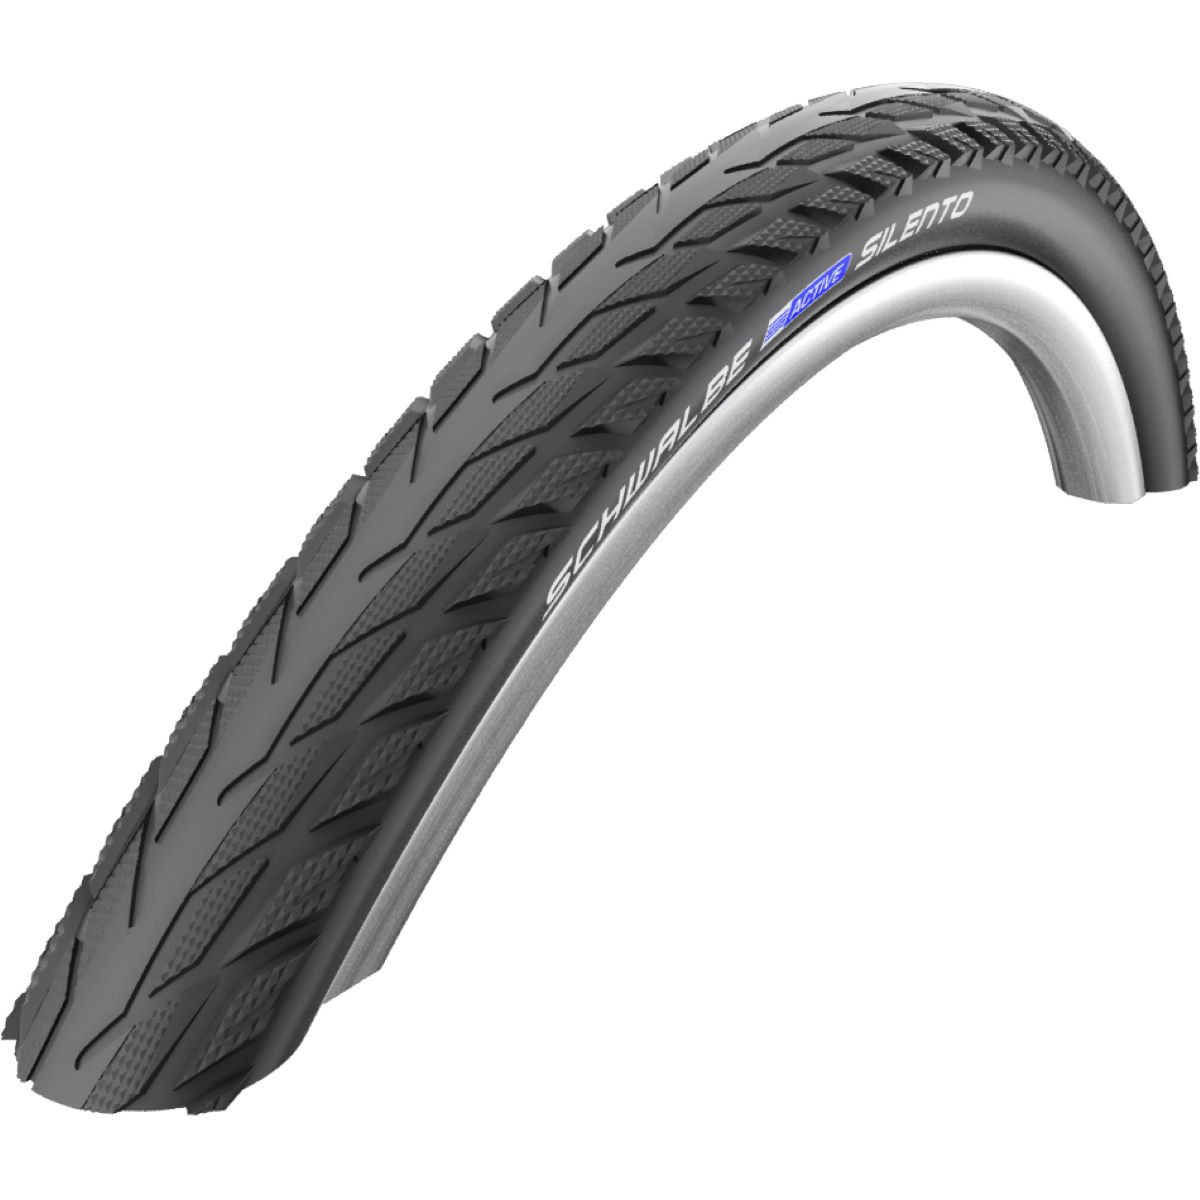 Schwalbe silento touring tyre road race tyres black notset 11100183 01 0